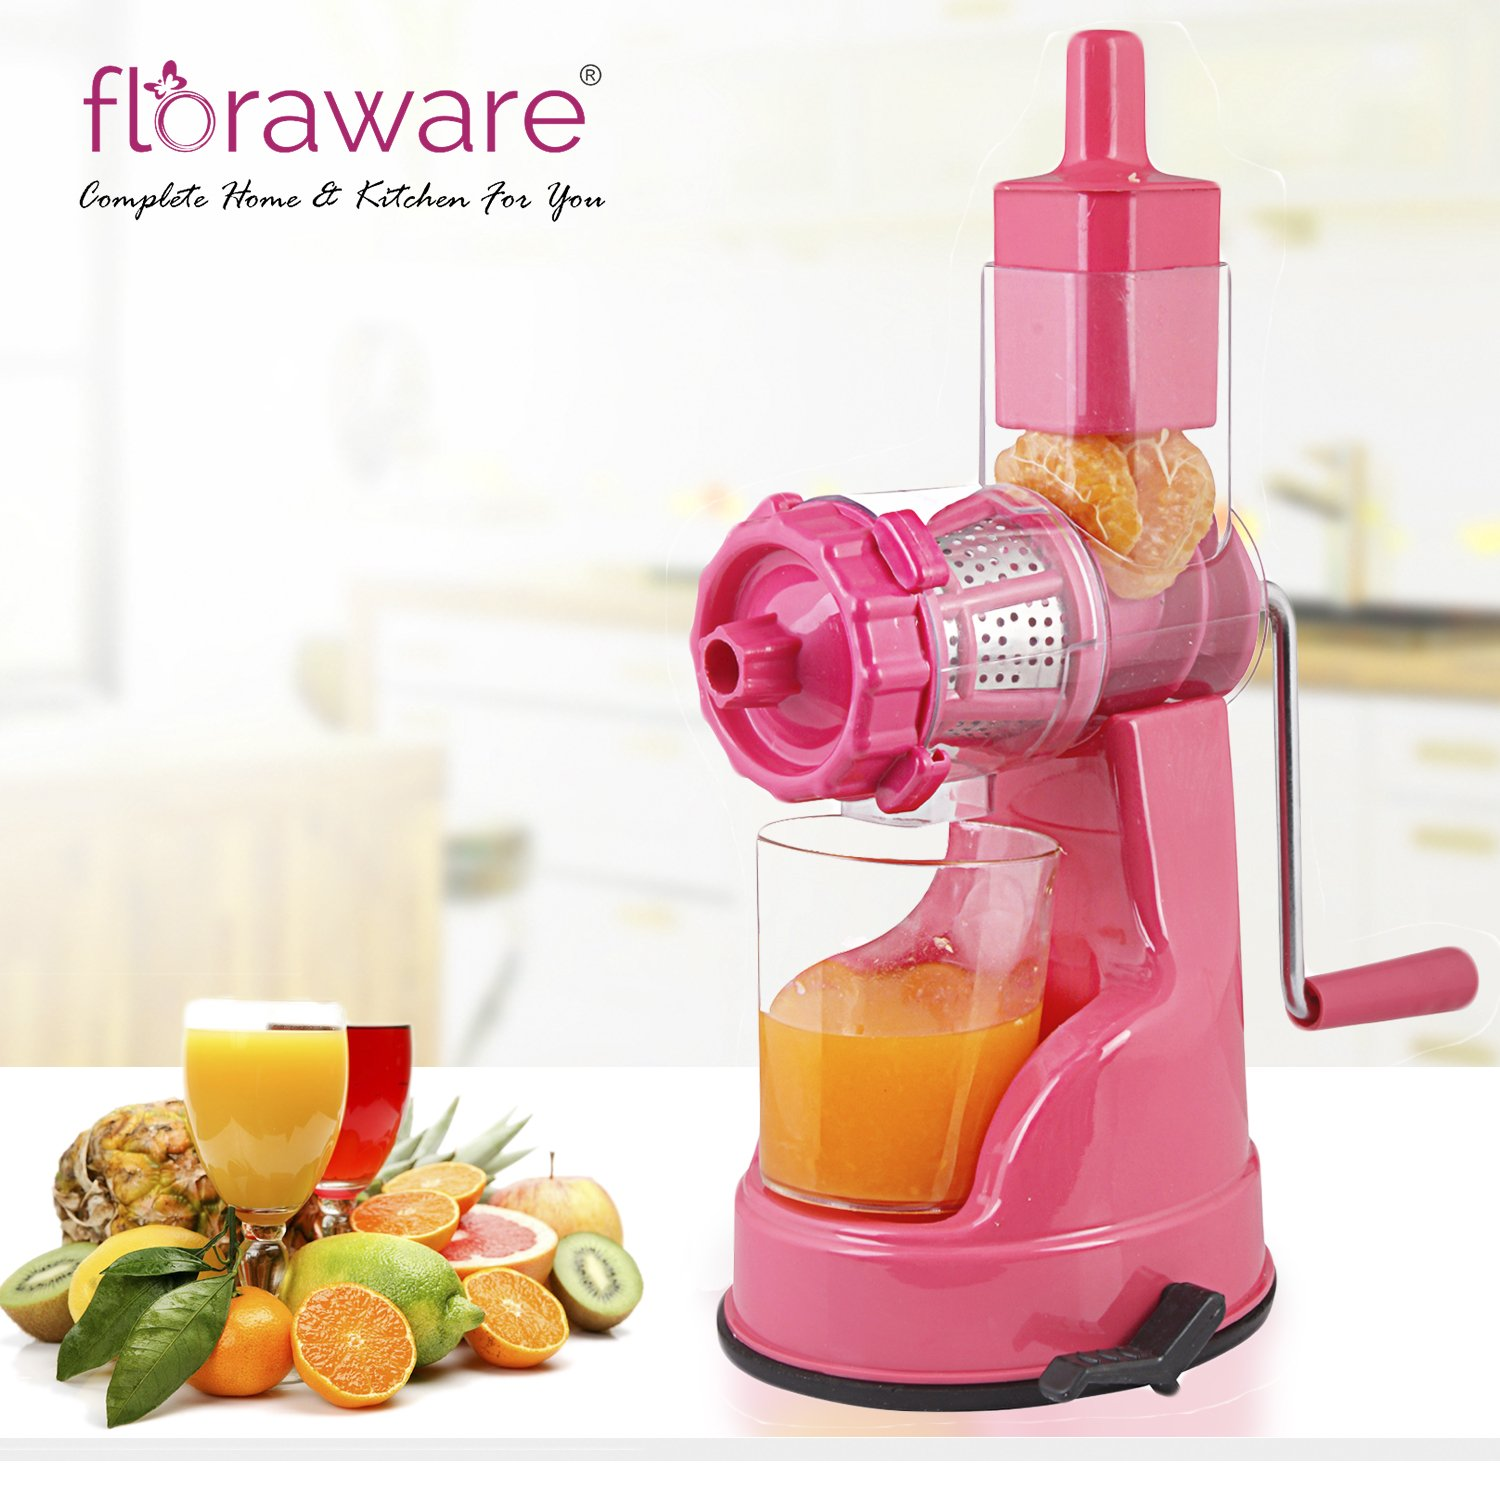 Floraware Fruit & Vegetable Steel Handle Juicer with Vaccum Locking System